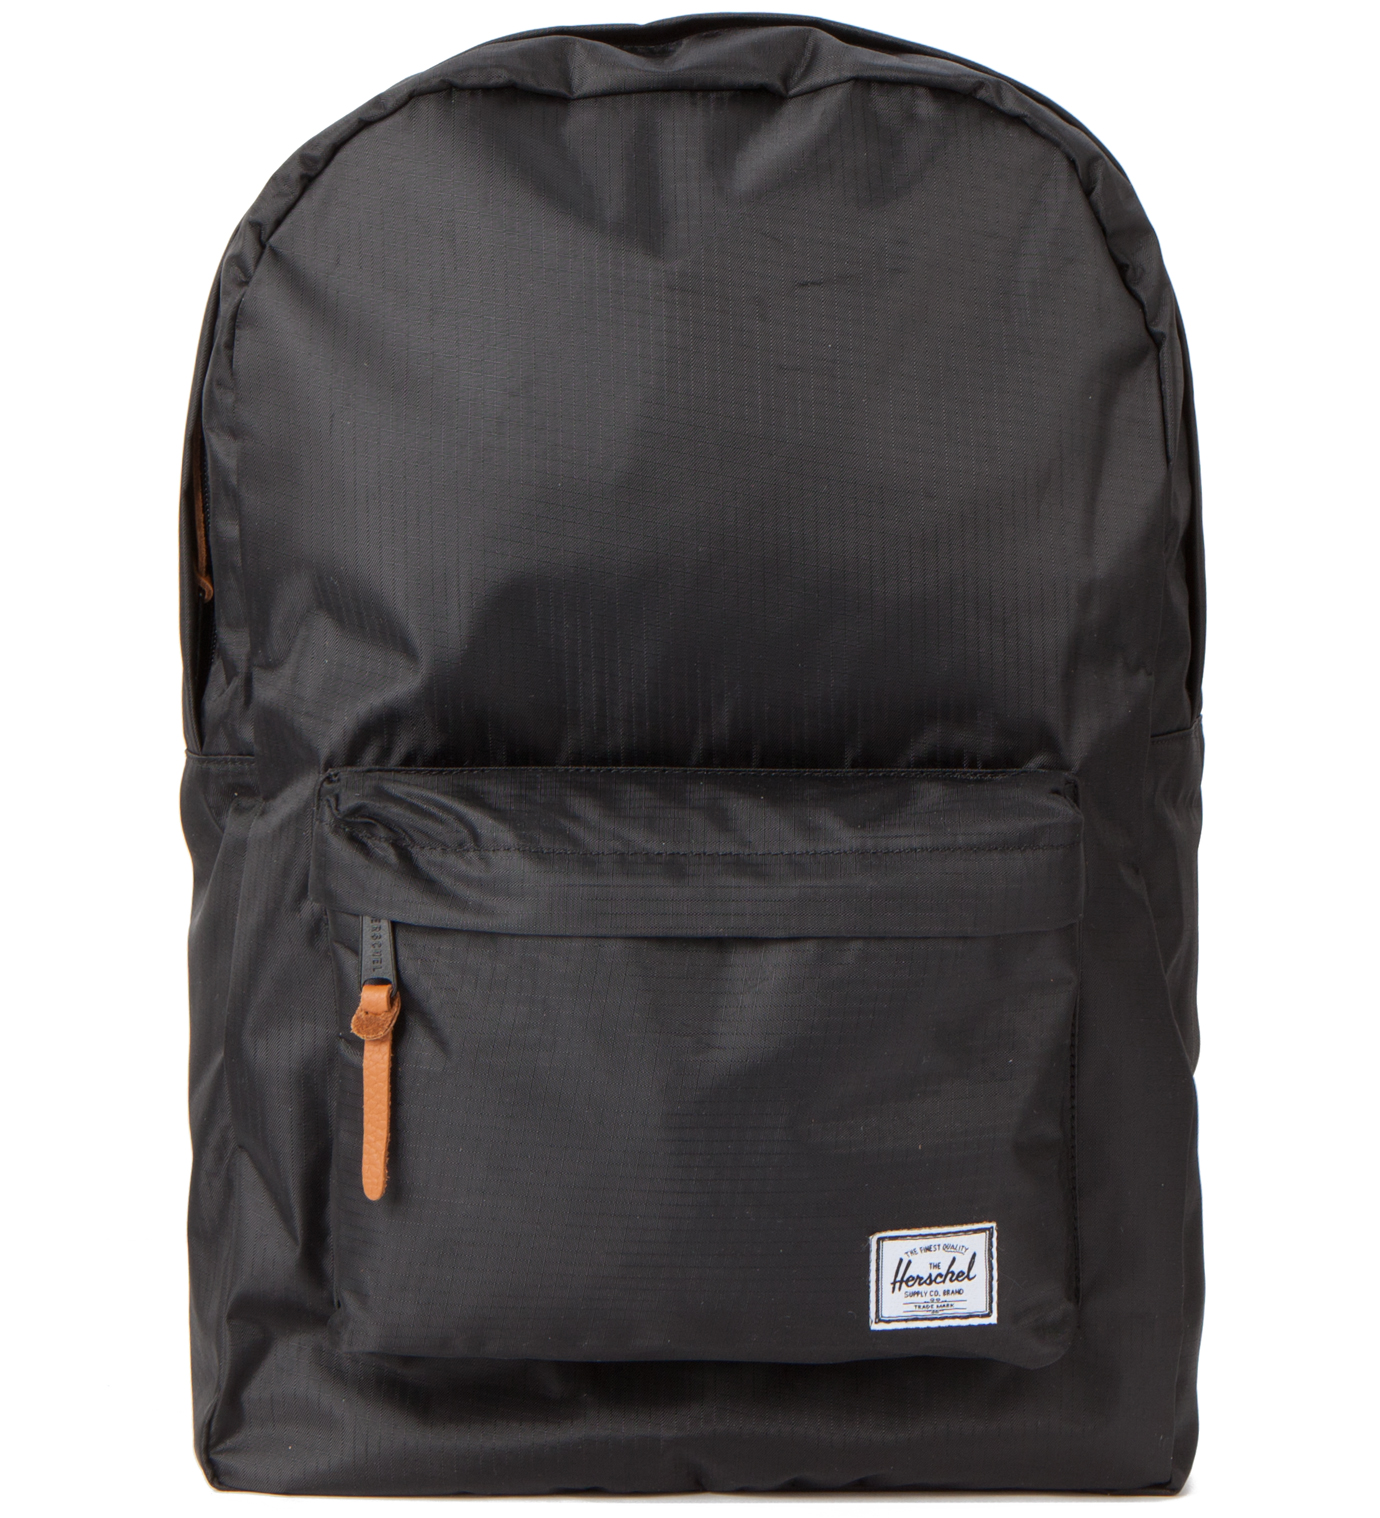 Herschel Supply Co. Black Classic Ripstop Backpack